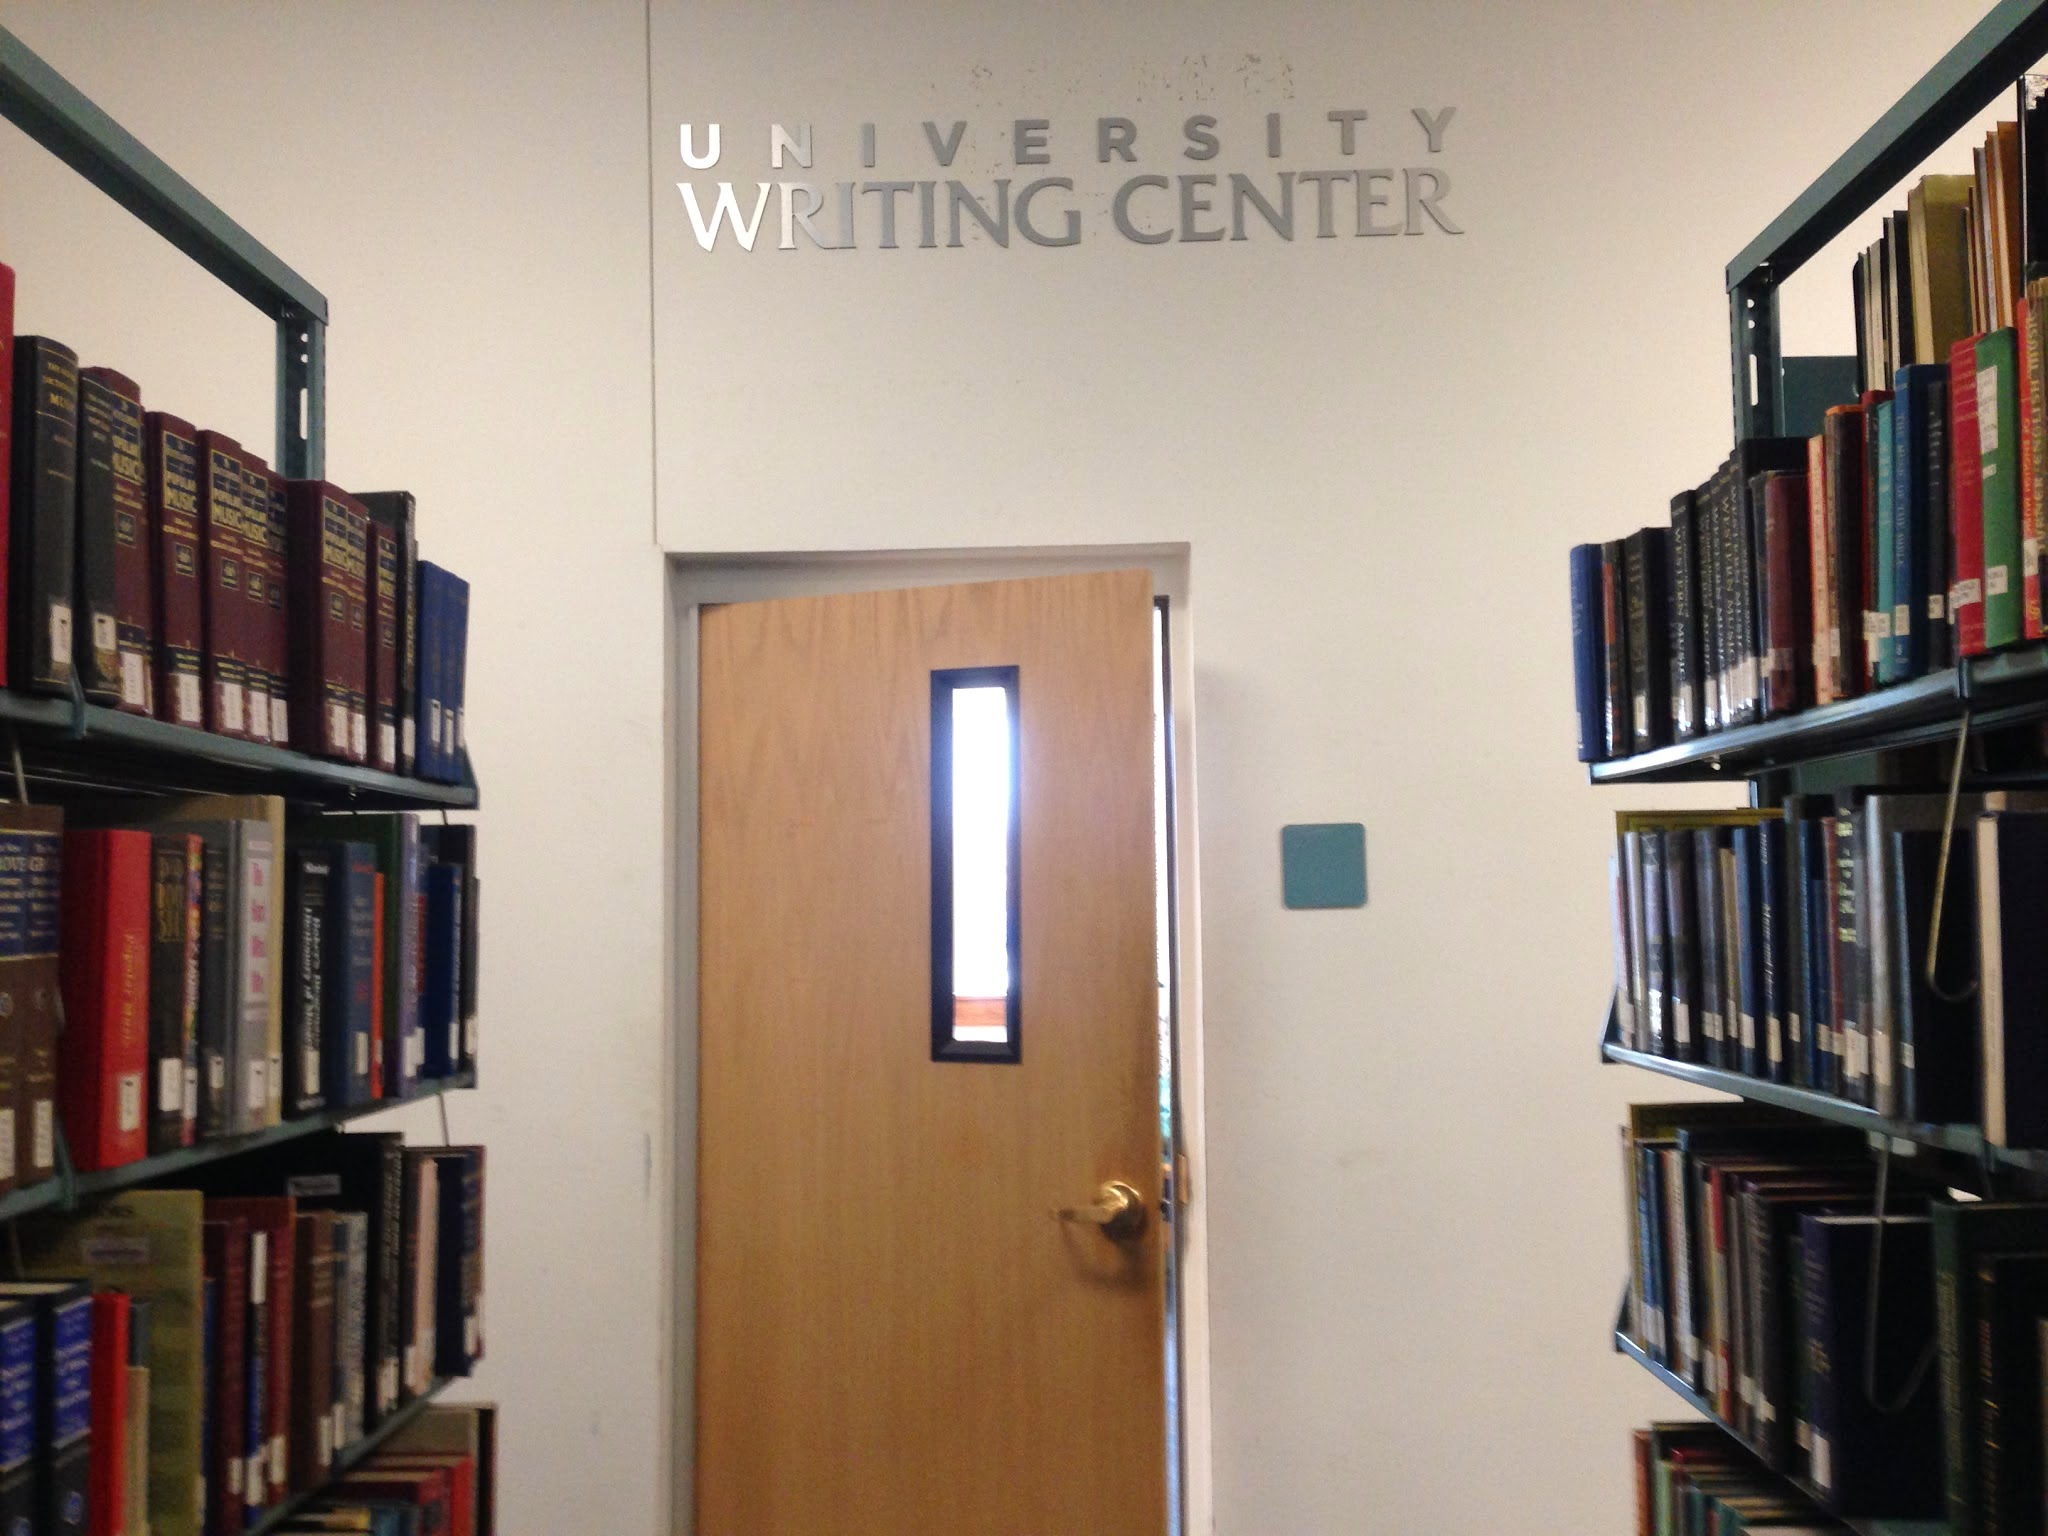 vanderbilt v gerry dinardo Make sure you have an access to the biggest essays, term papers, book reports, case studies, research papers available on the net order a custom writing service from dedicatedwriters.